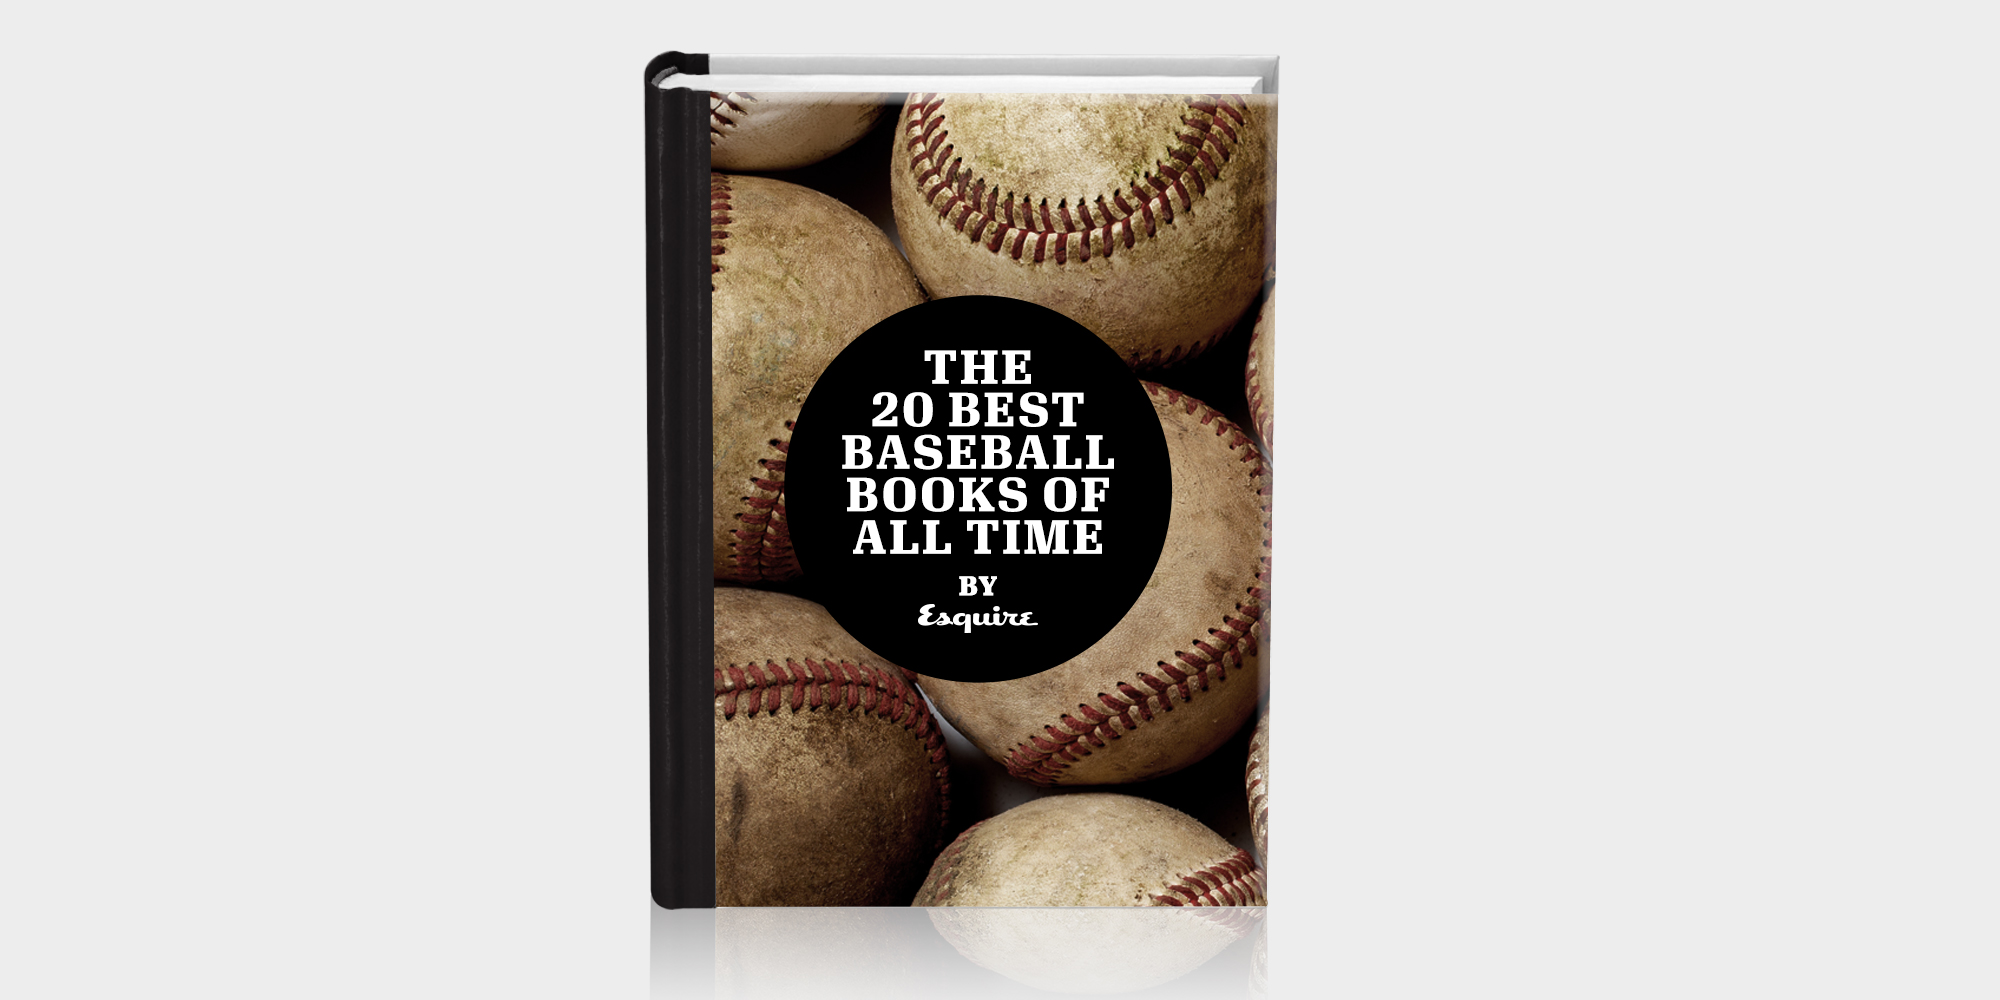 8 new baseball books worth adding to your lineup, from the 2018 Brewers to Ernie Banks